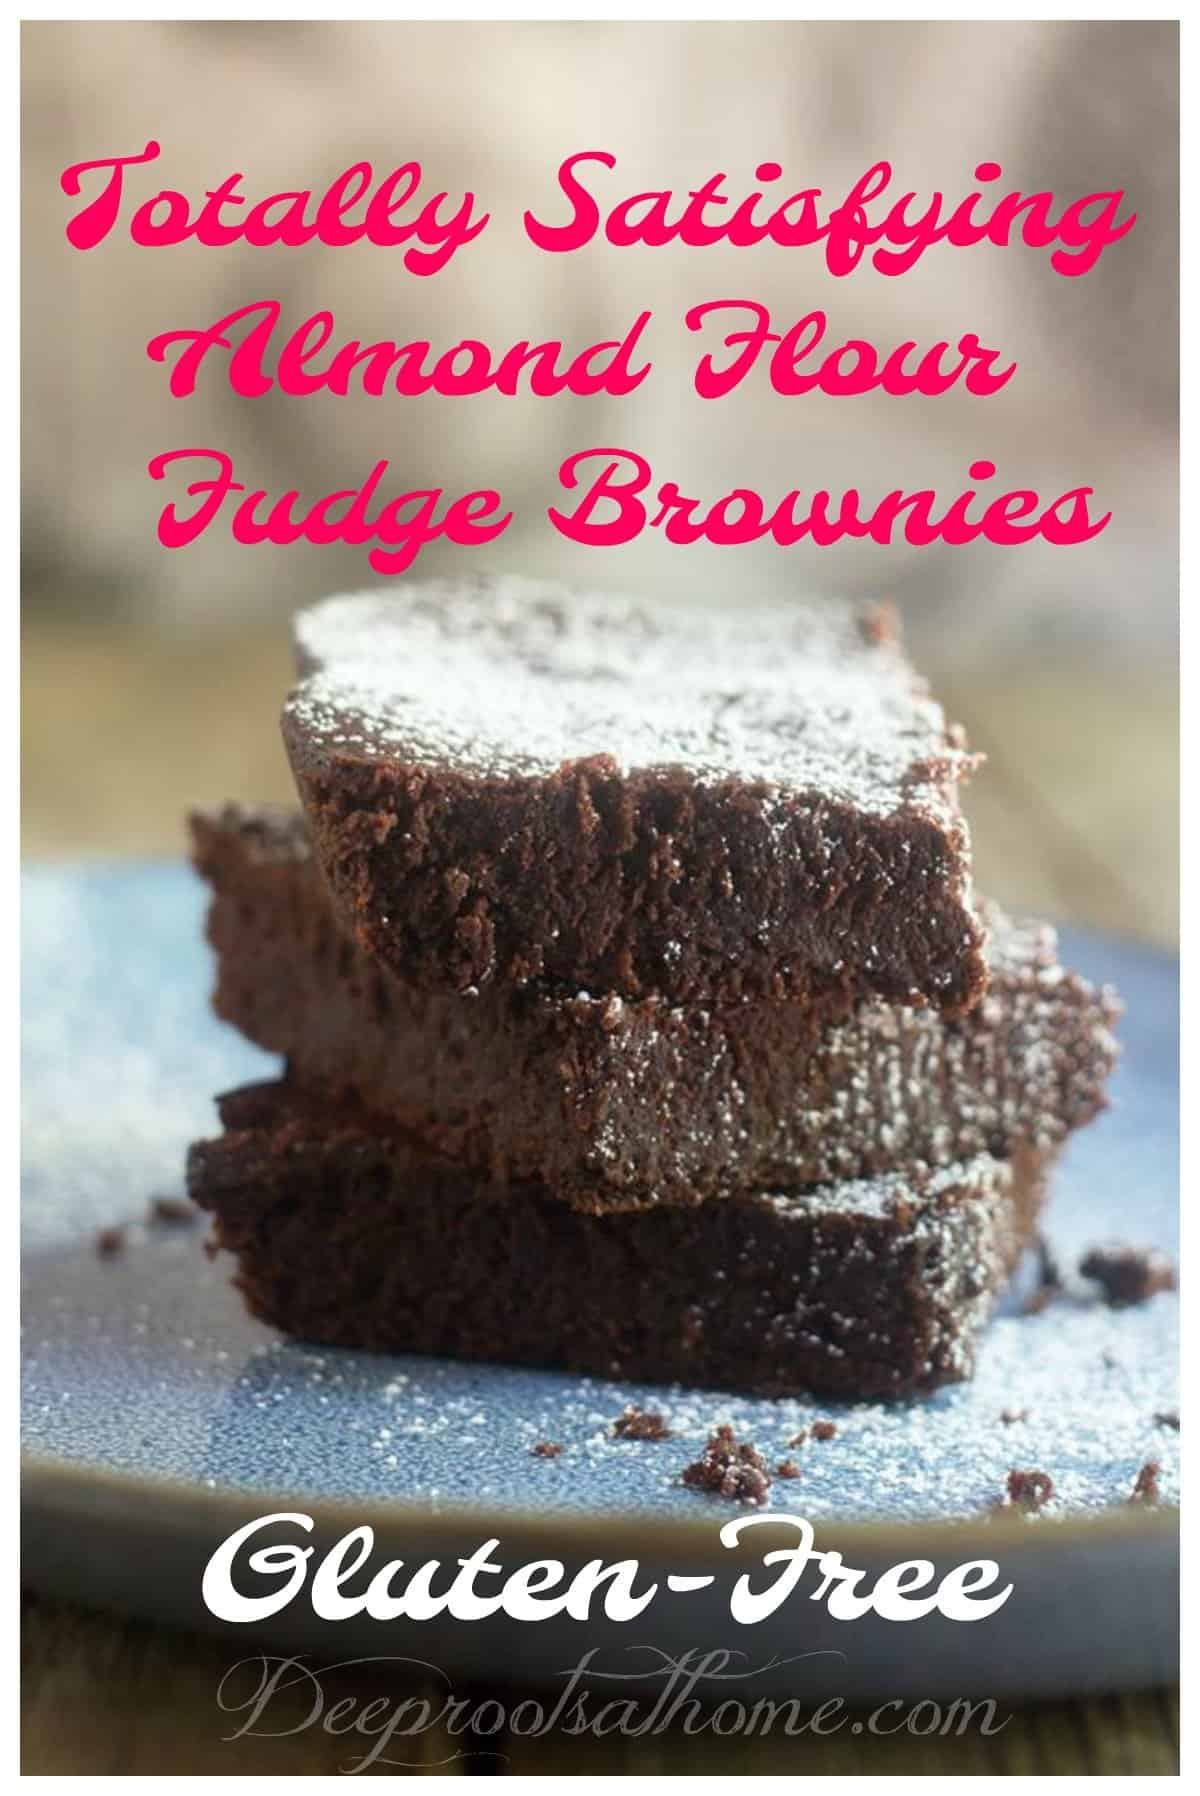 Totally Satisfying, Gluten-Free, Almond Flour Fudge Brownies. Chocolaty fudge brownies with a dusting of confectioner's sugar.